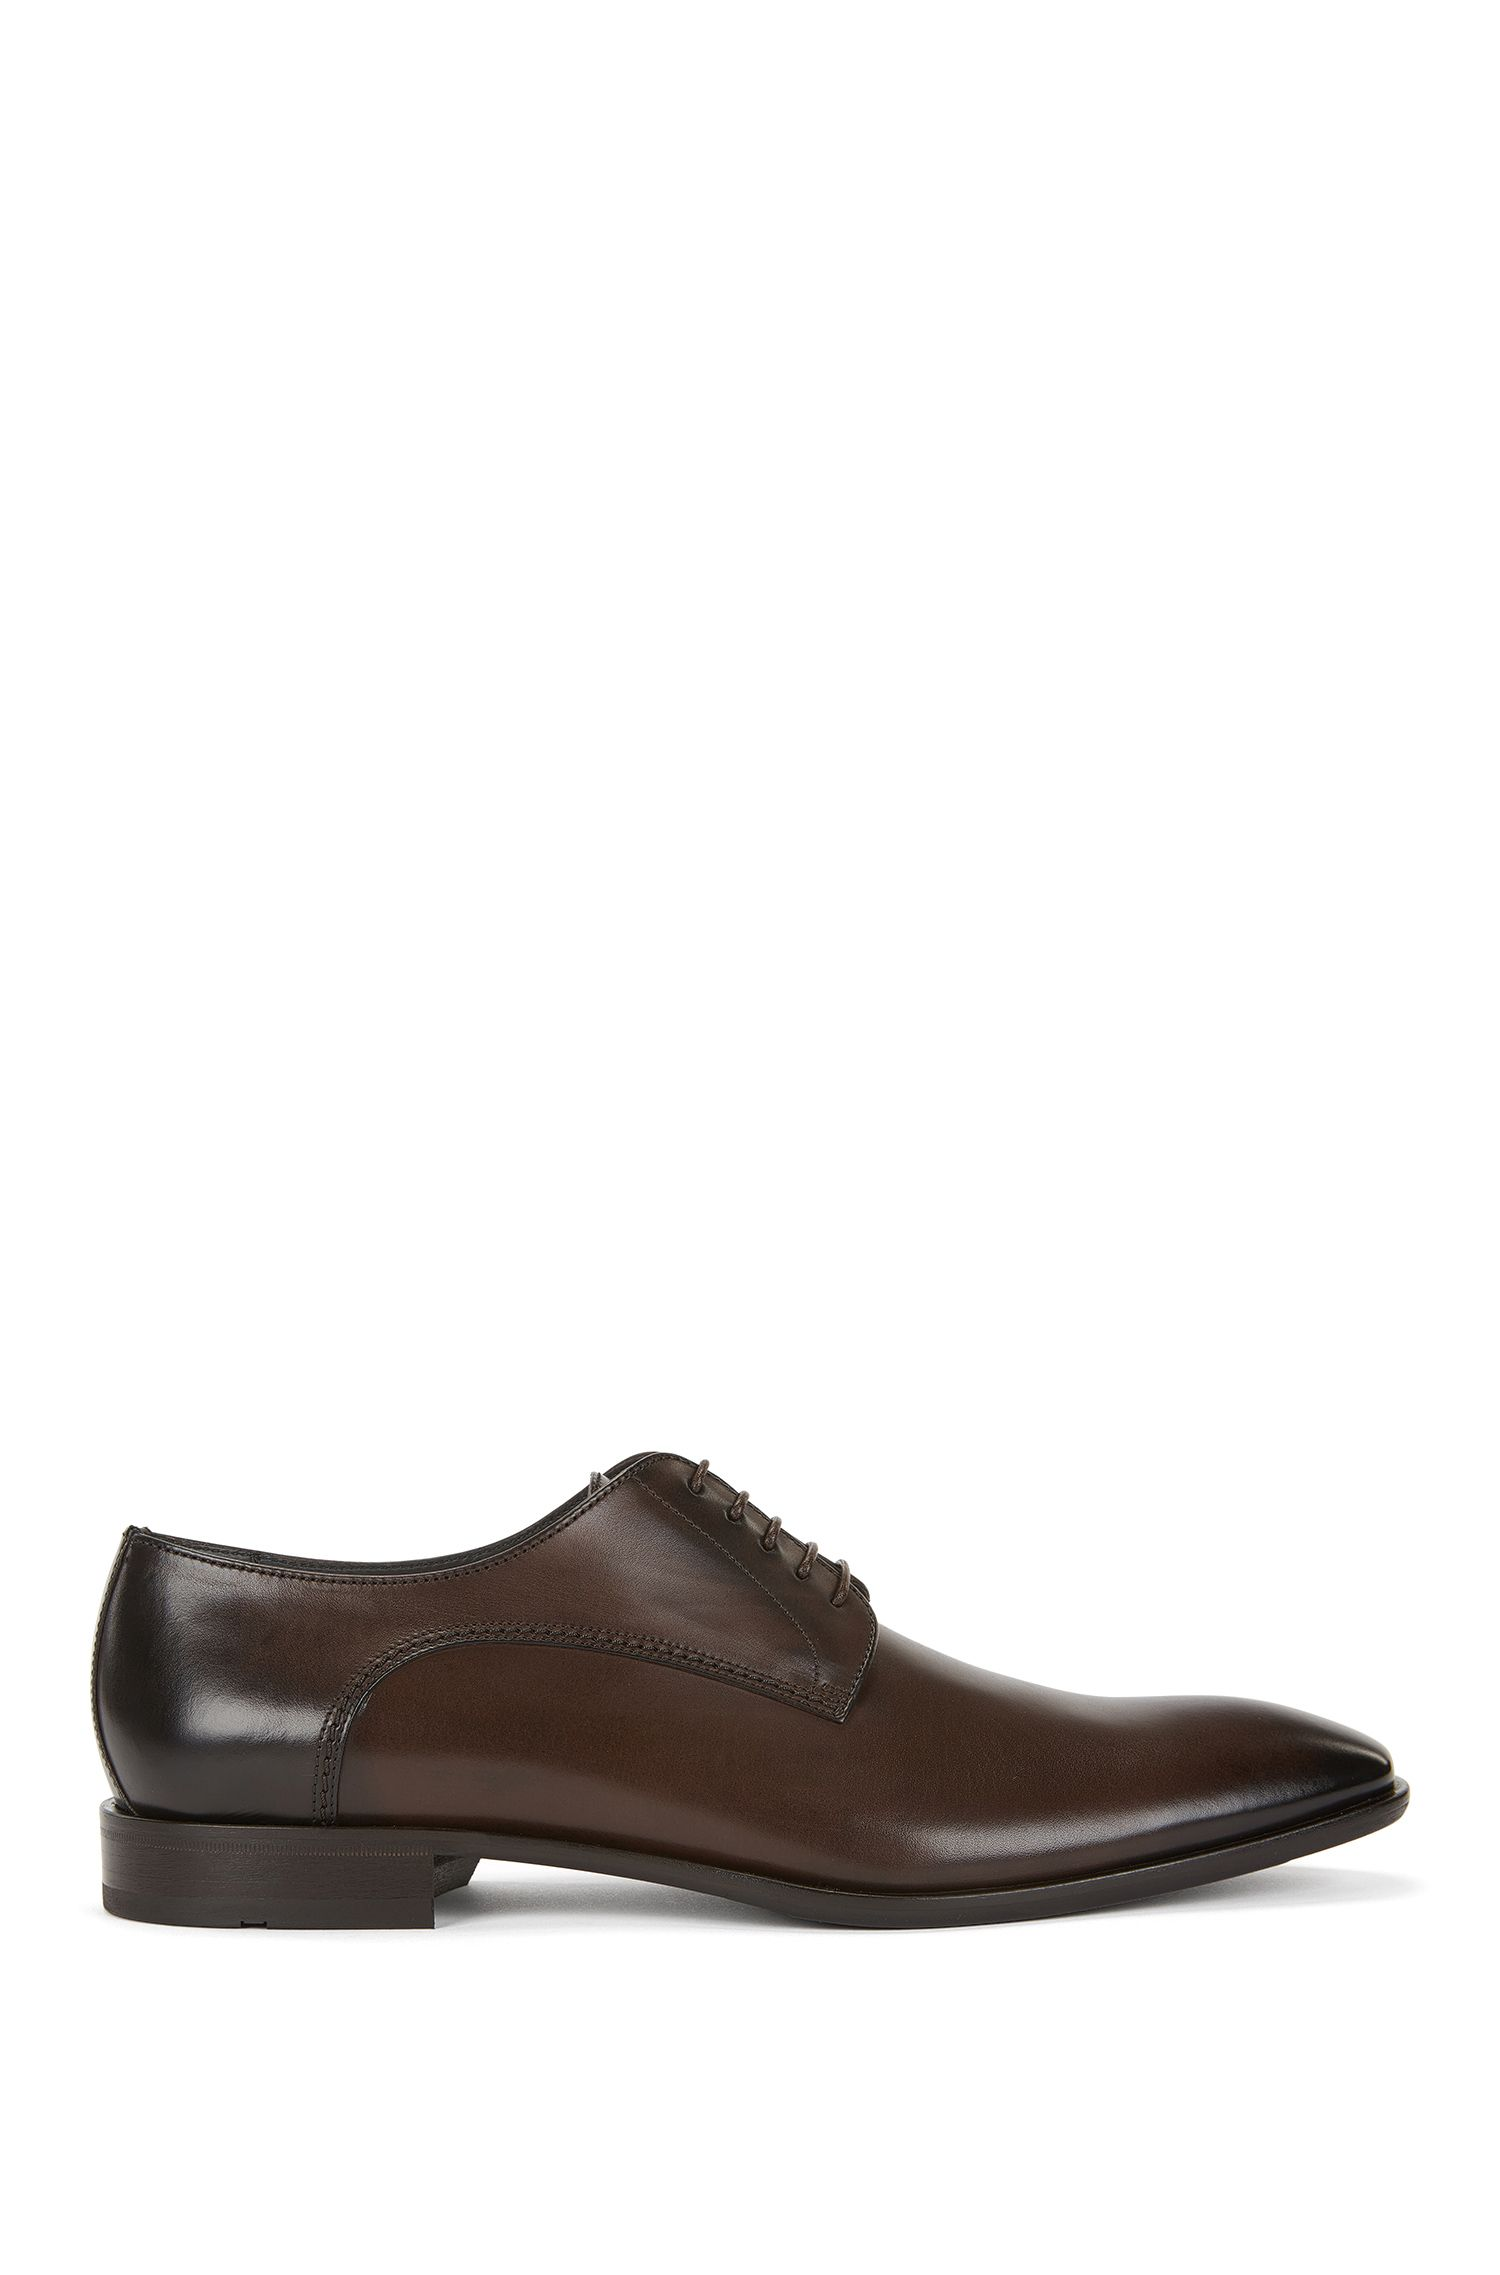 Leather Derby shoes with antique finish